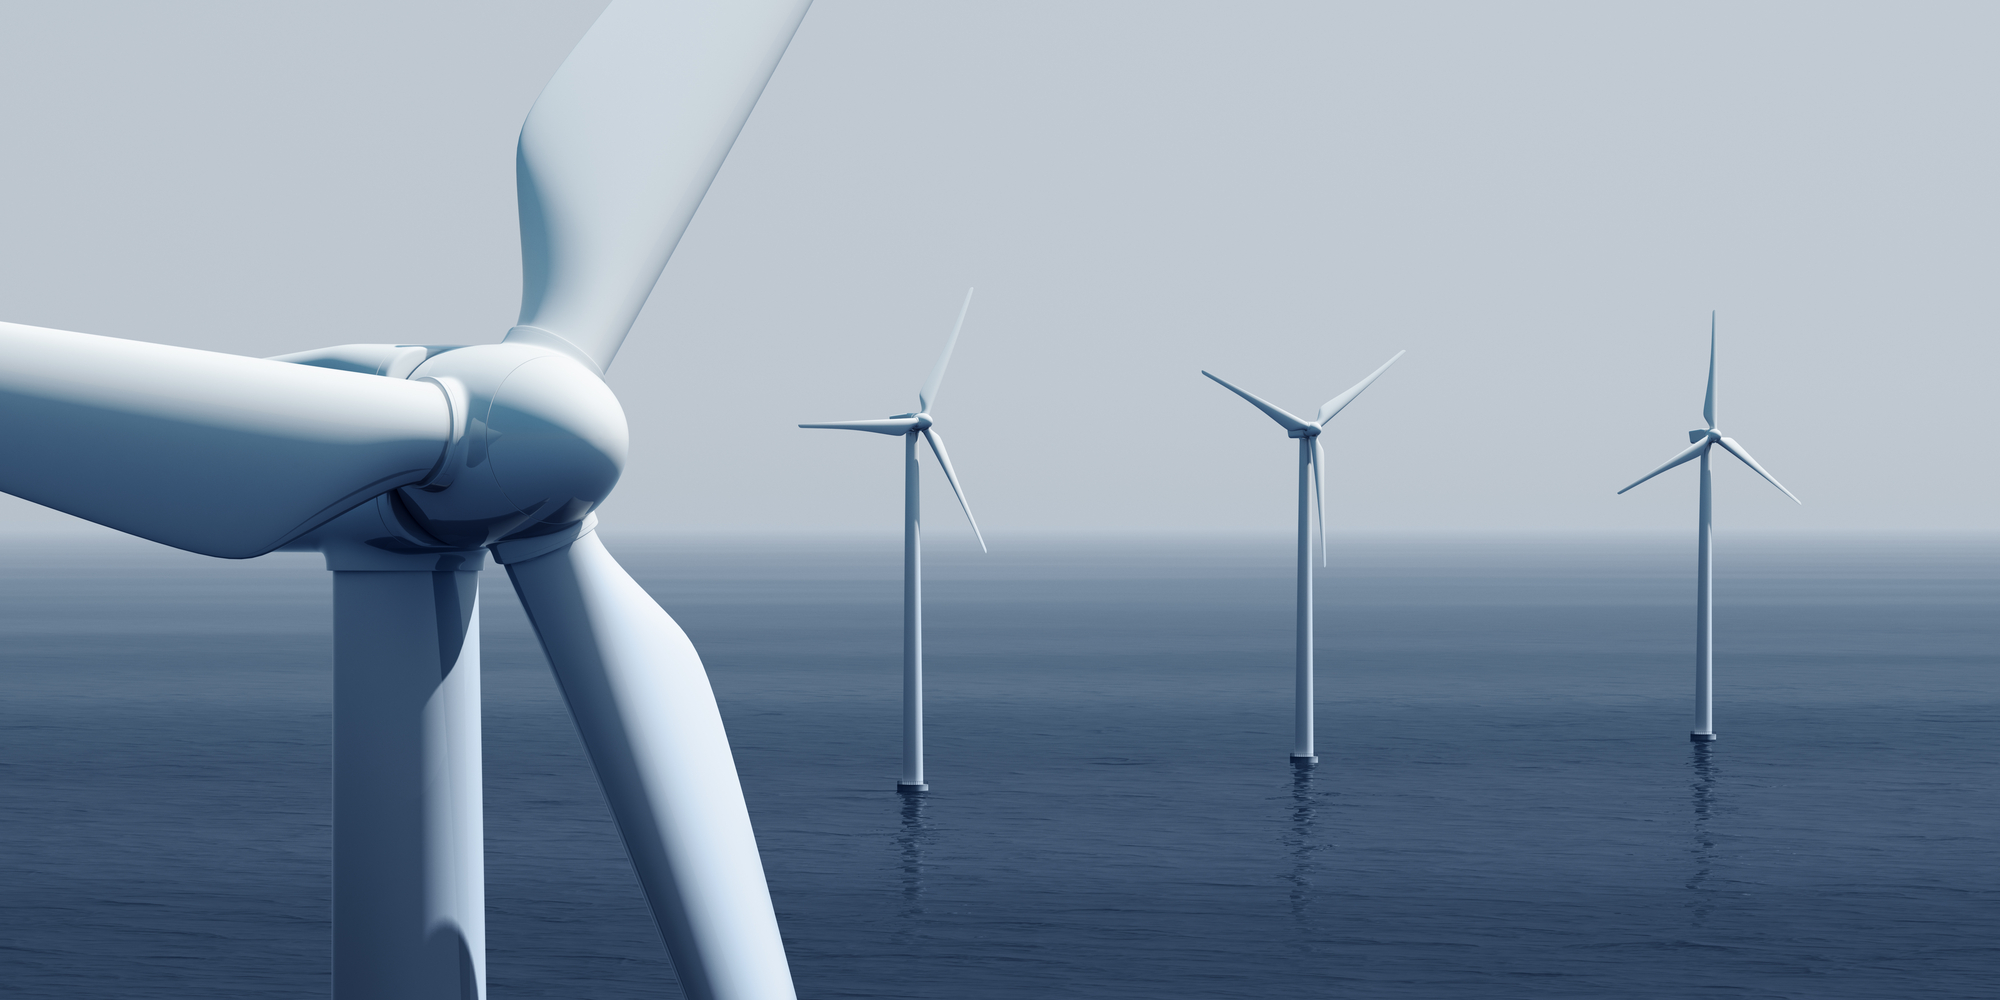 Offshore wind farms have the potential to alter the behavior of migrating fish according to a new study